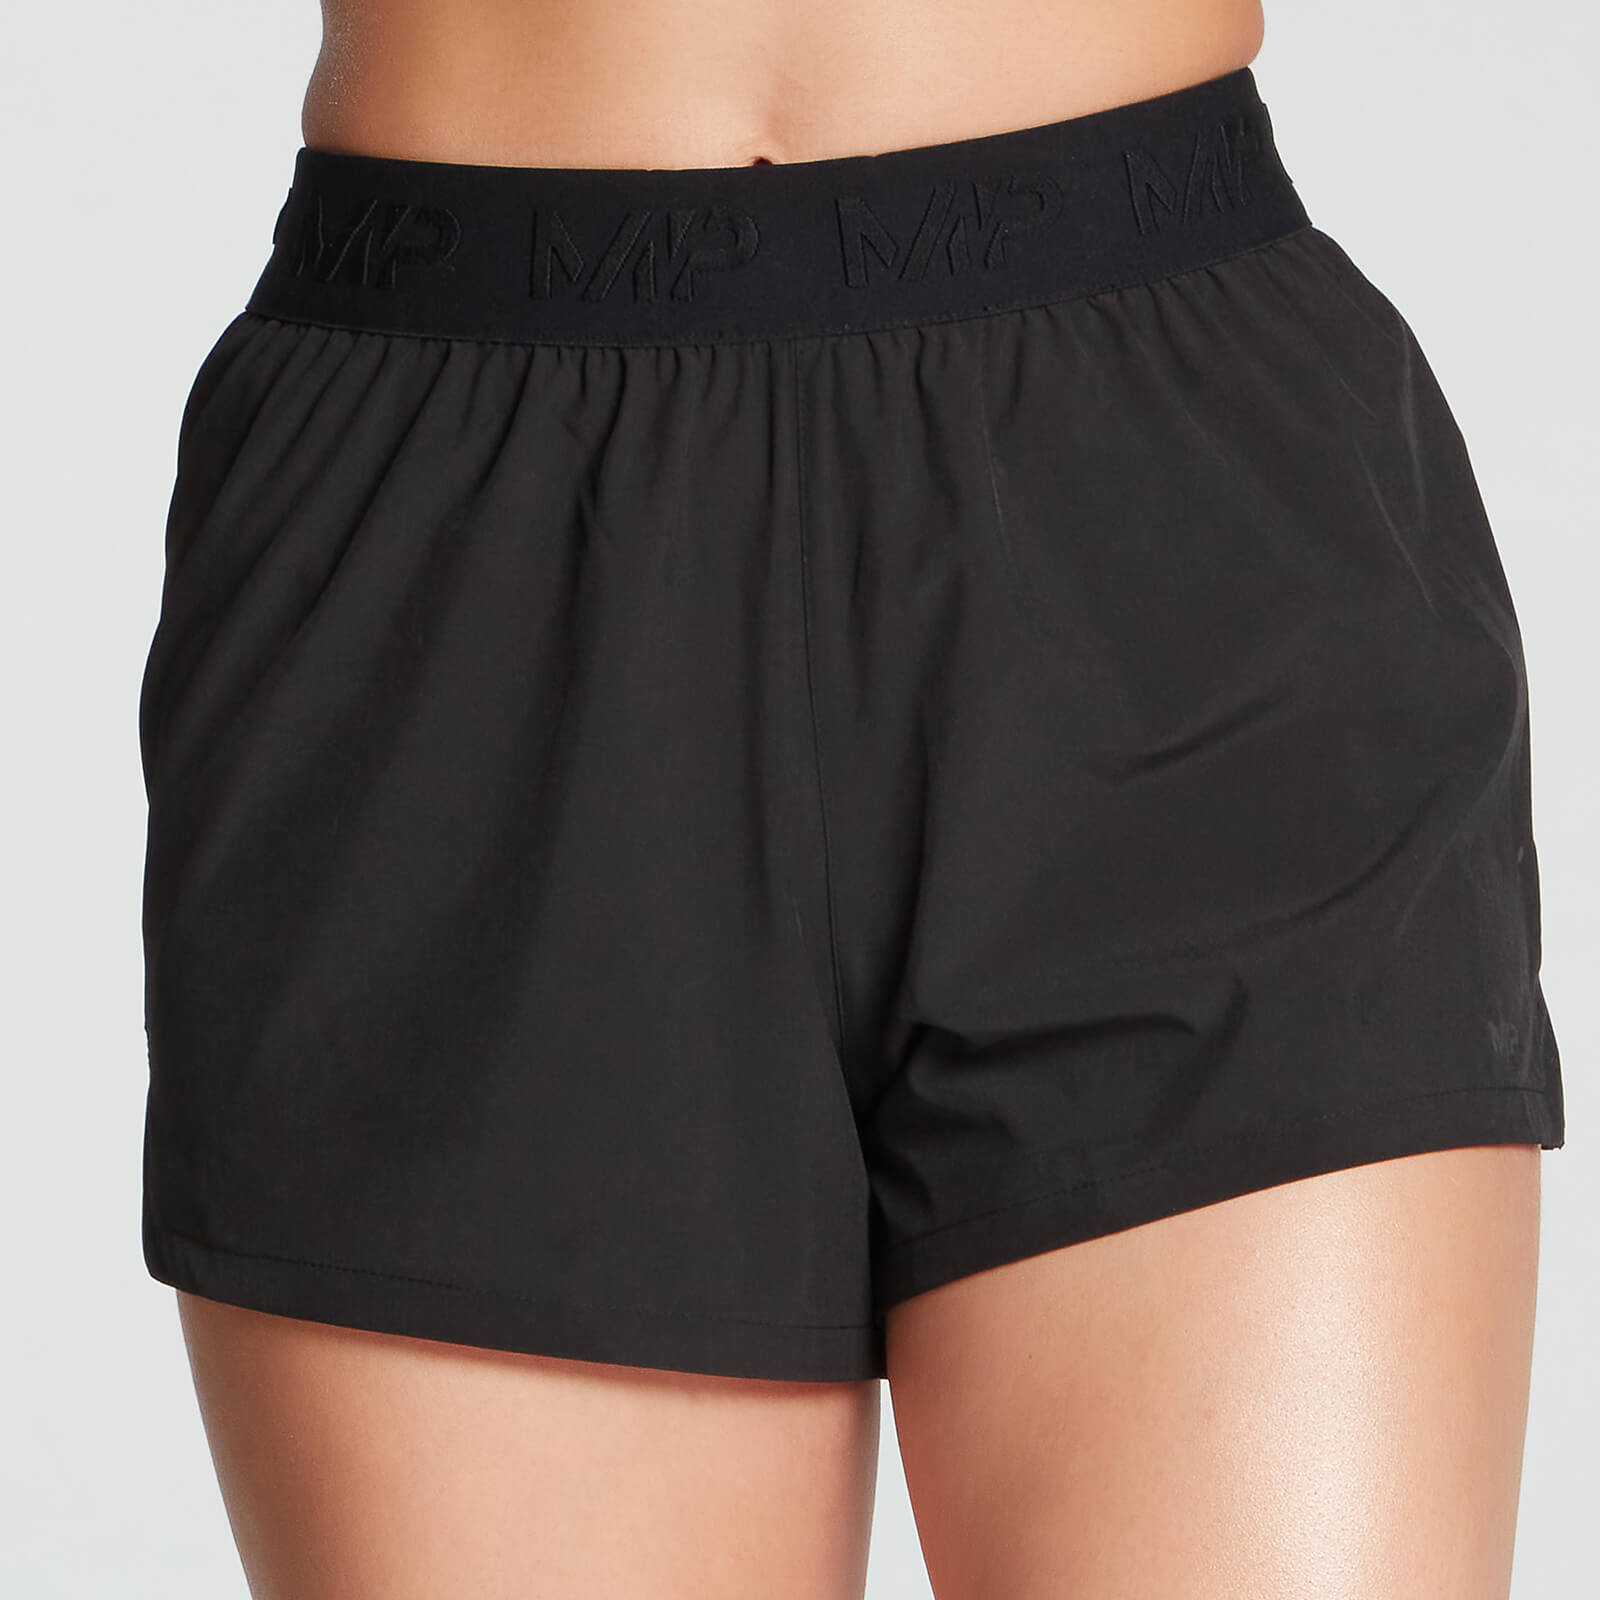 MP Damen Essentials Training Energy Shorts - Schwarz - XS von MP